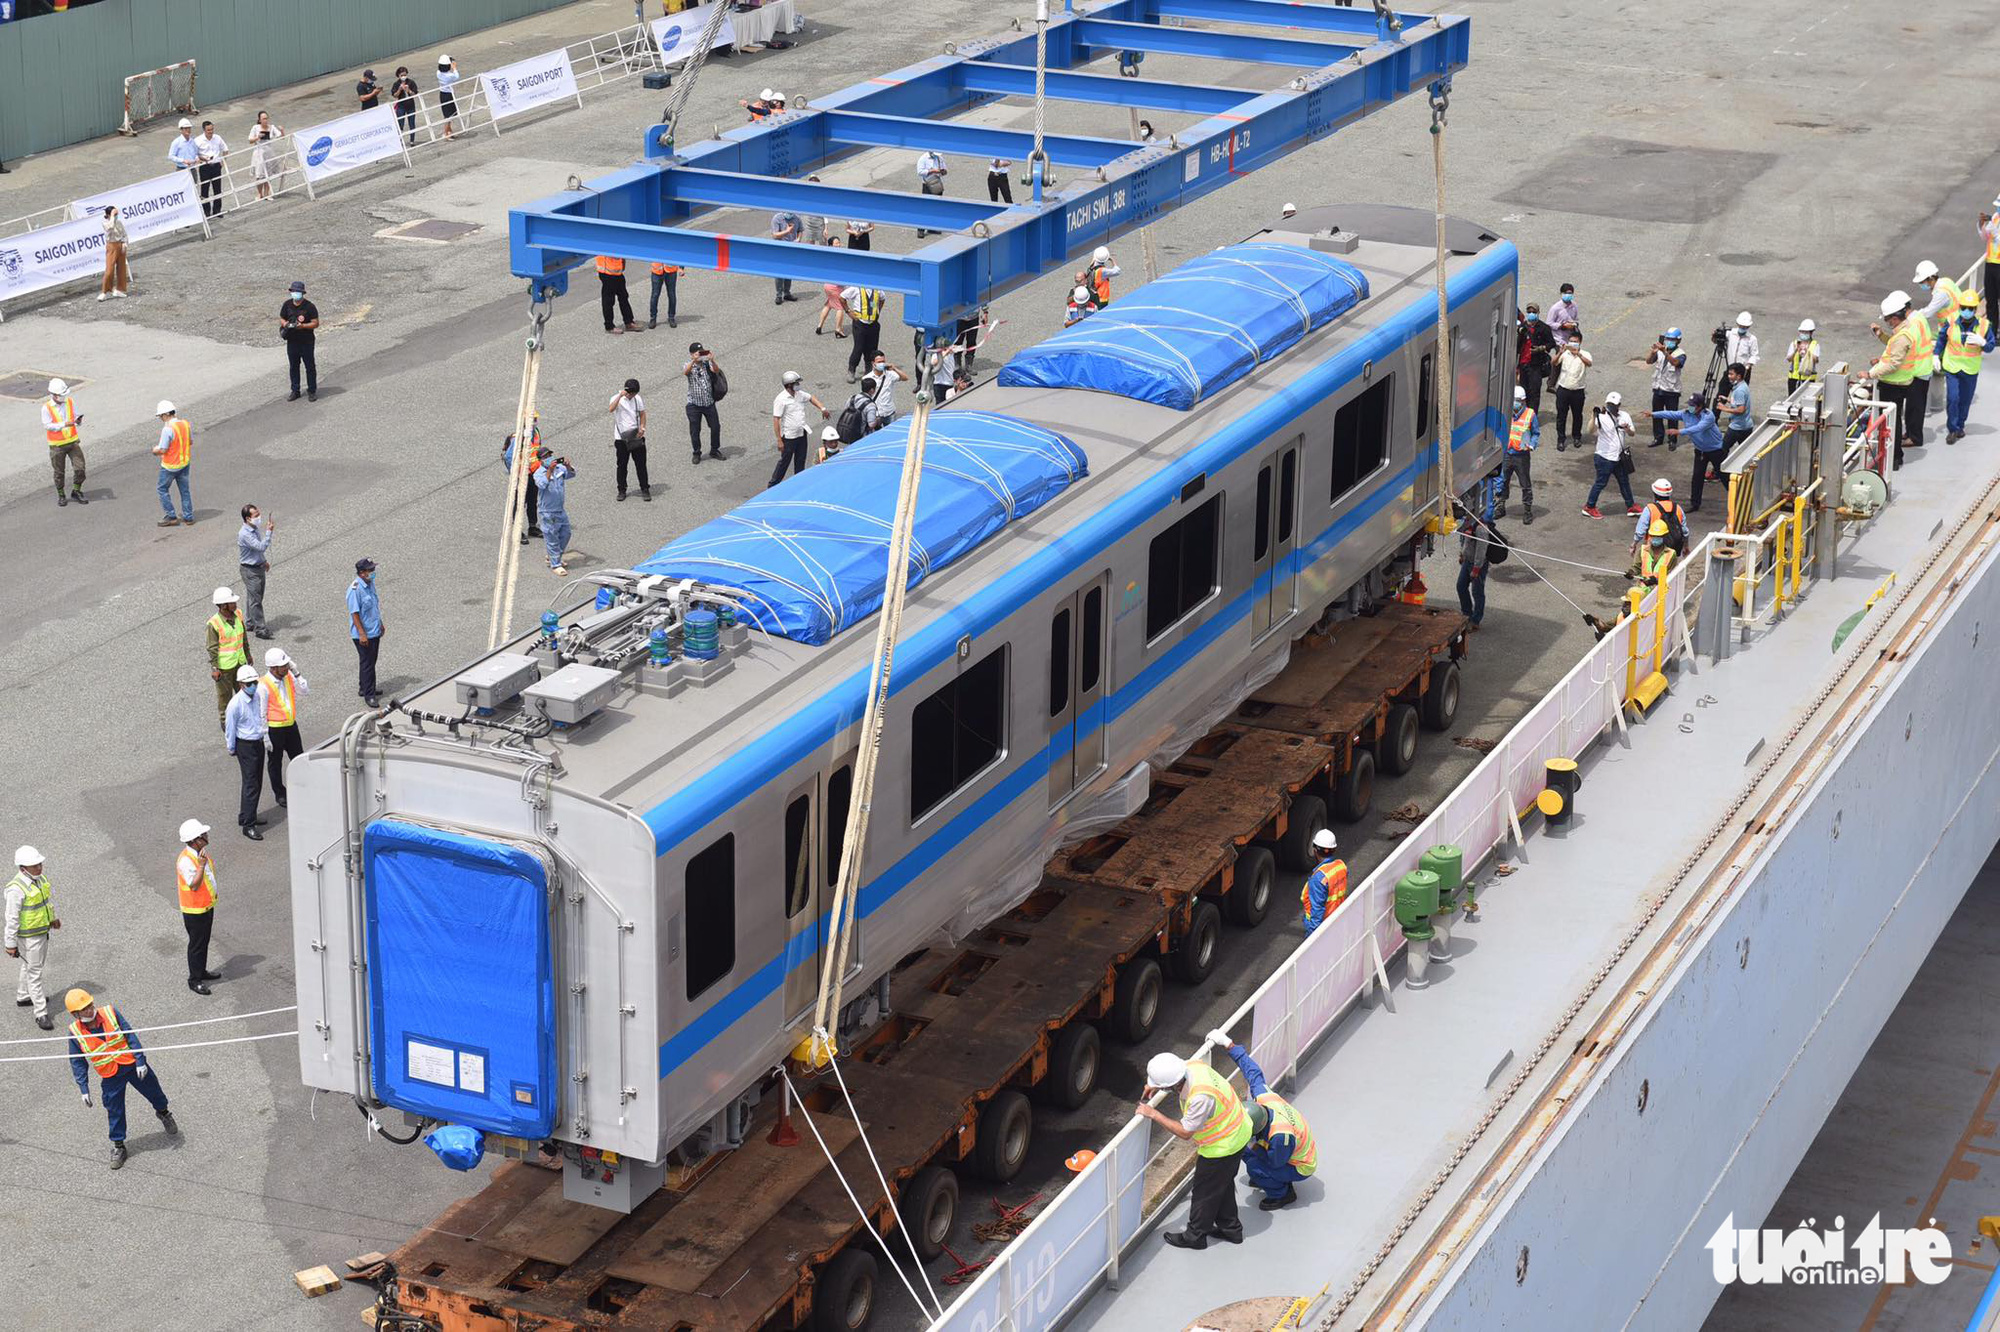 A train carriage is being unloaded at Khanh Hoi Port in Ho Chi Minh City, October 8, 2020. Photo: Quang Dinh / Tuoi Tre